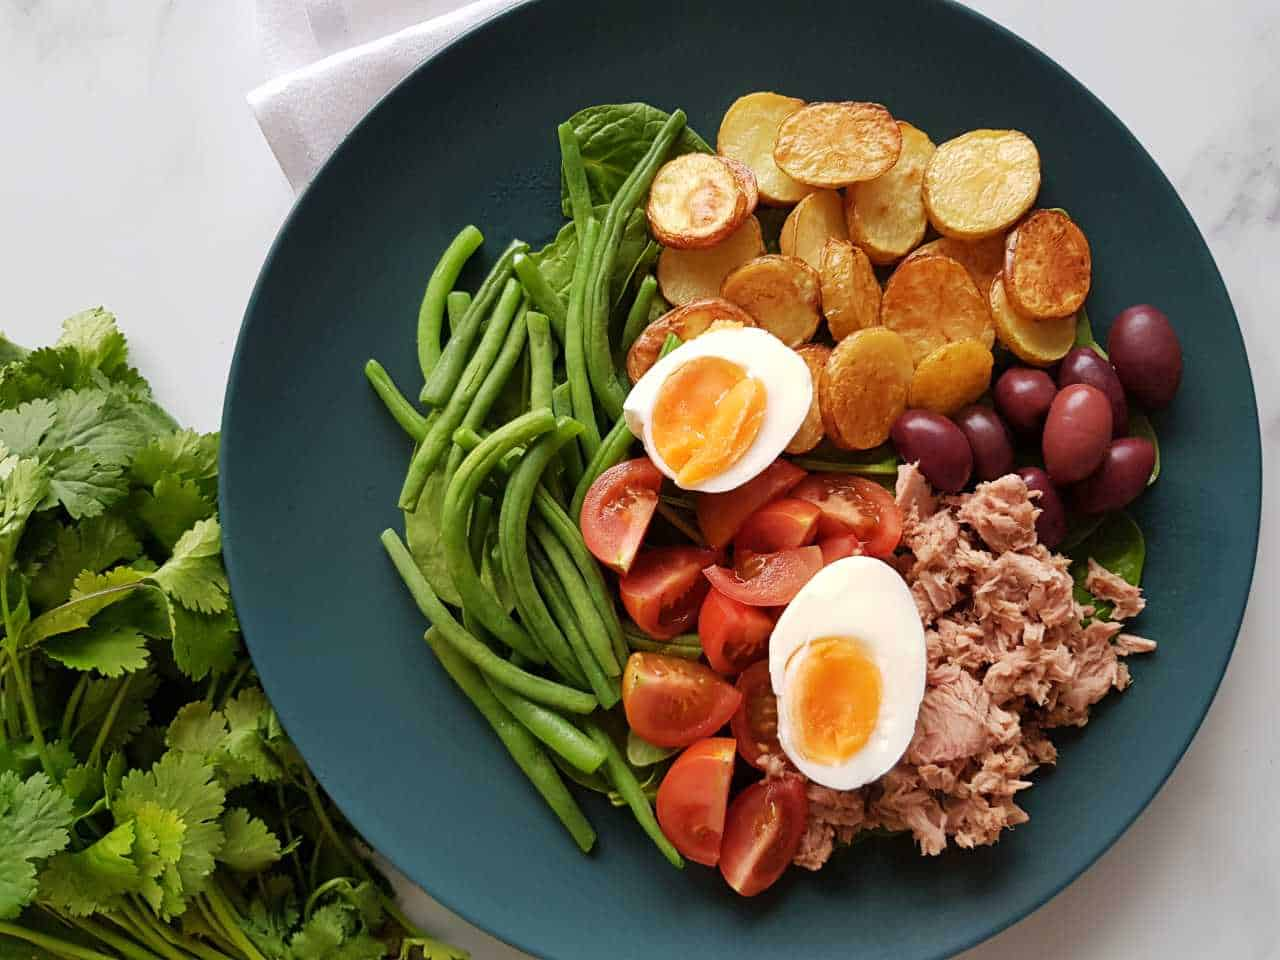 Nicoise salad on a blue plate on a marble table with fresh herbs on the side.